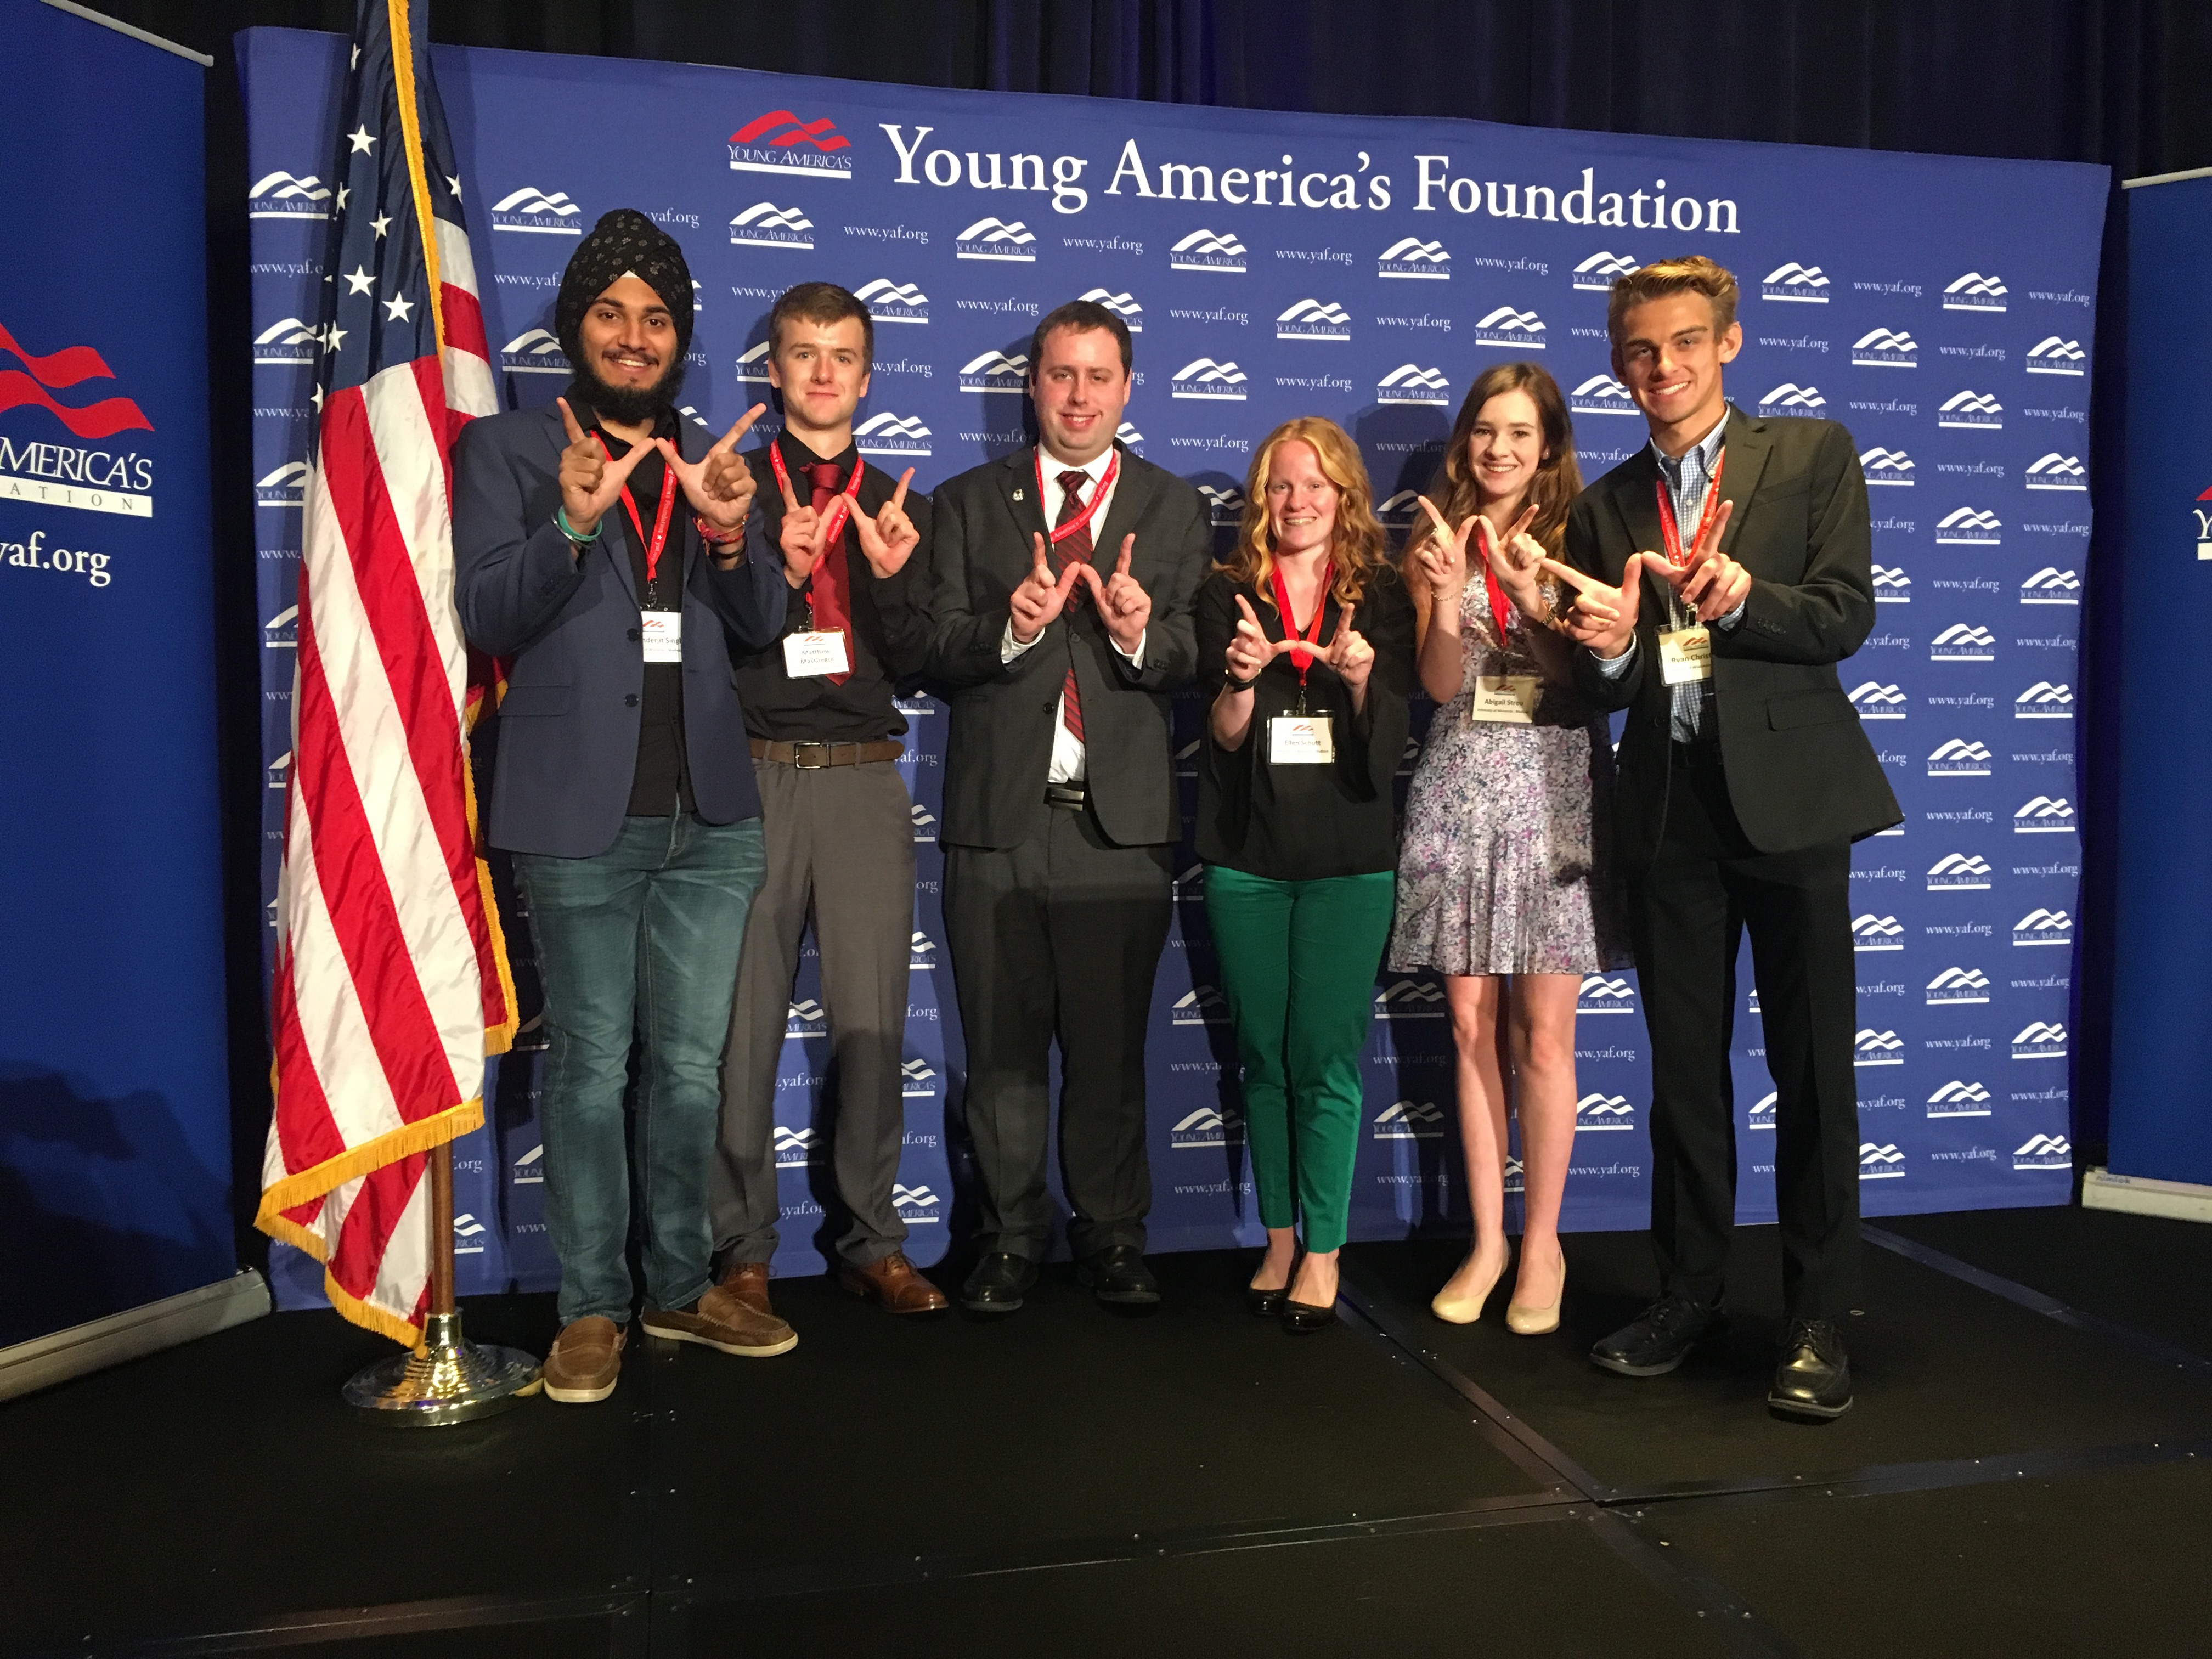 young americas foundation - HD 4032×3024